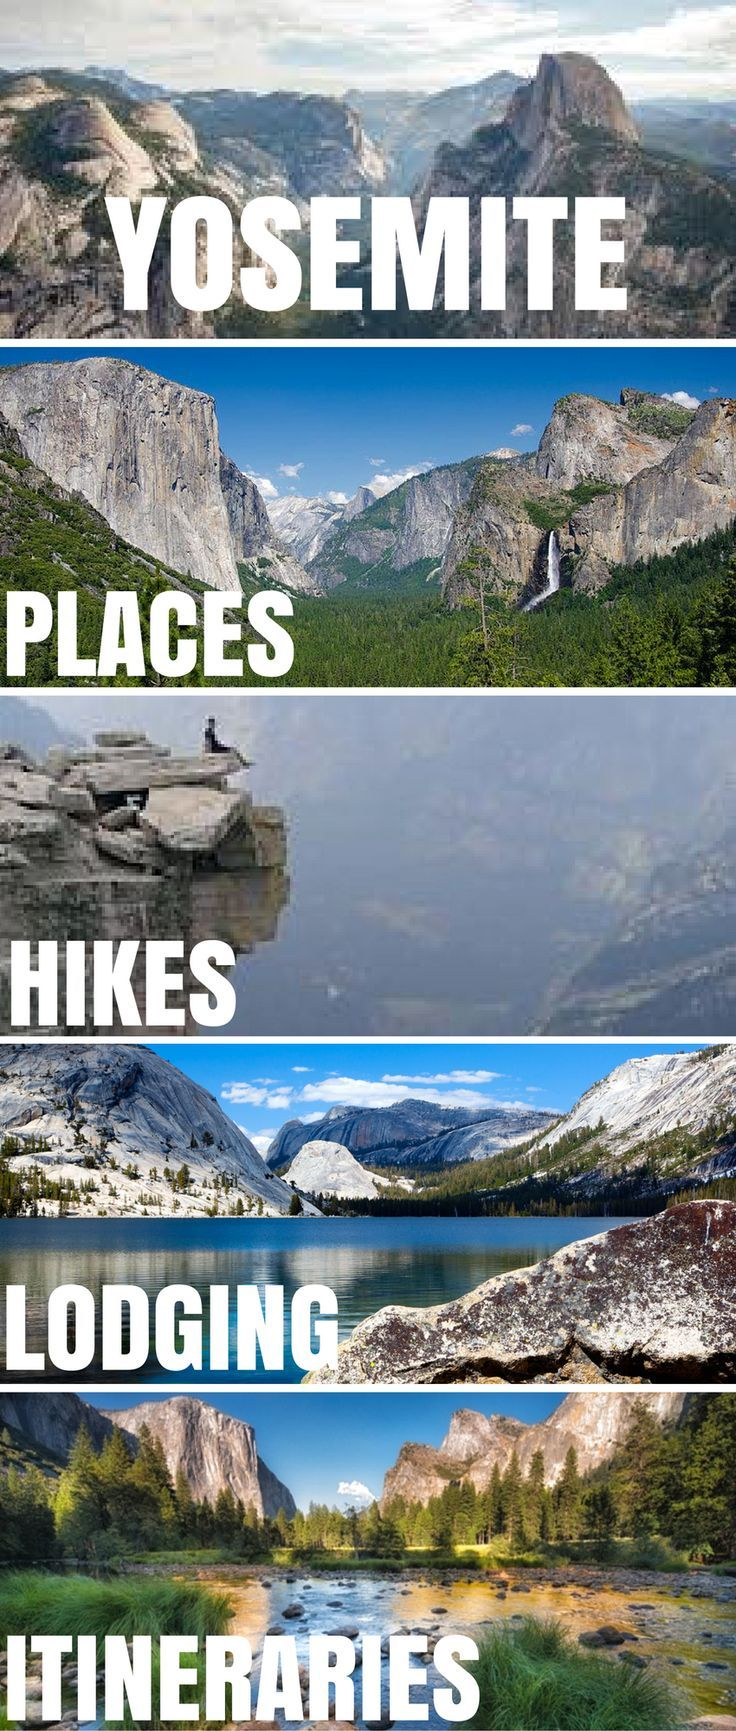 Everything you could possibly need to know about visiting Yosemite National Park. Best hikes in Yosemite Best camp sites in Yosemite Best lodging in Yosemite Best things to see in Yosemite